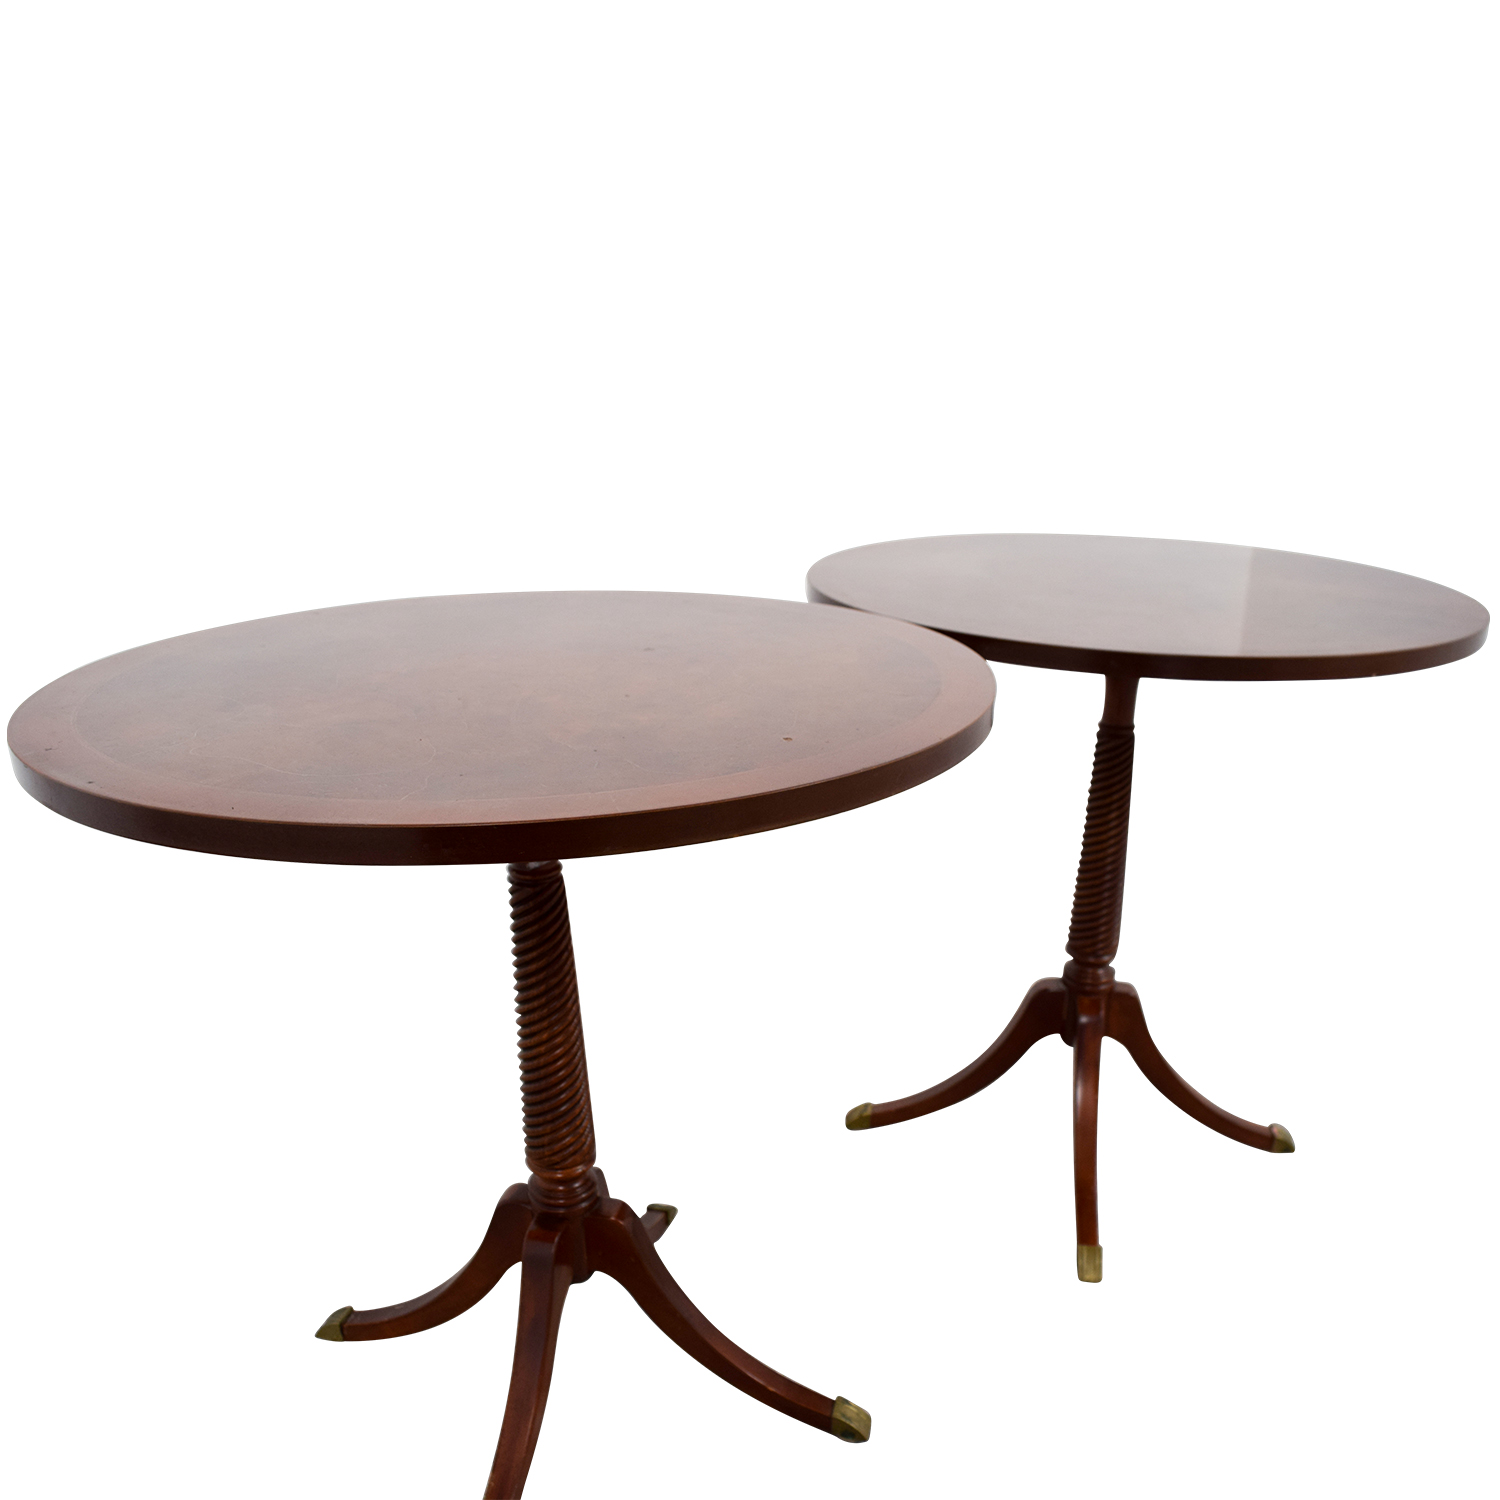 Furniture Masters Furniture Masters Round Wood End Tables dimensions